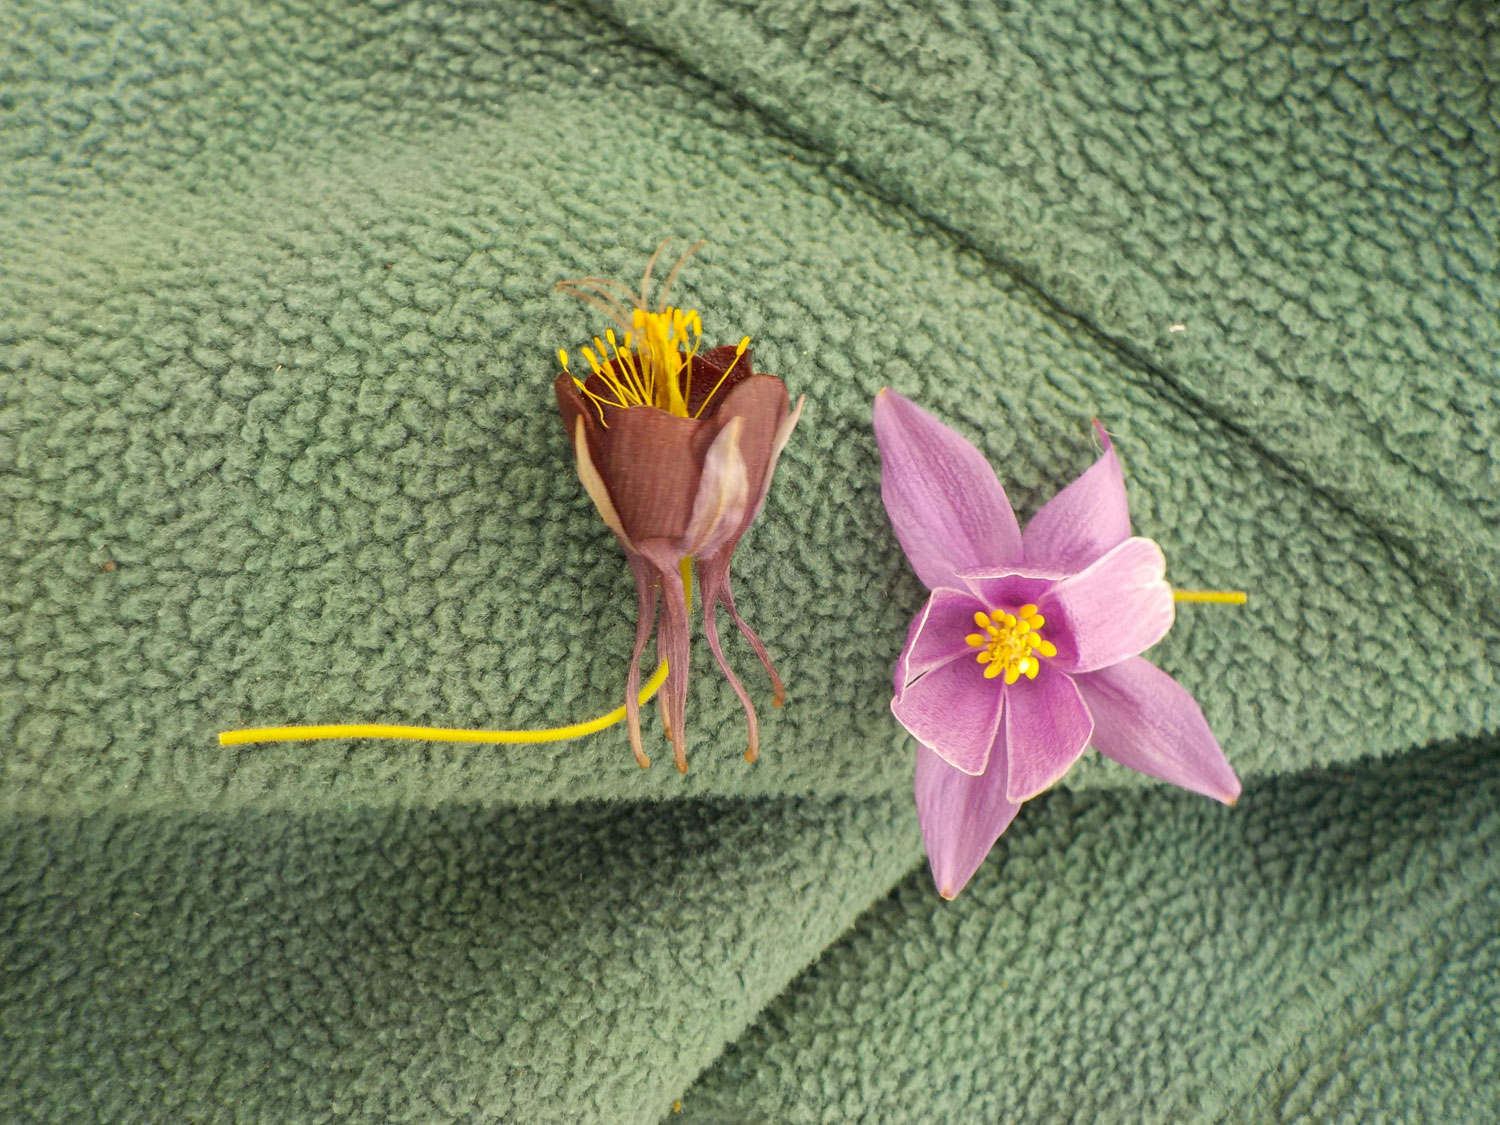 Presence and absence of the petal nectar spurs in <i>Aquilegia</i> (left) and <i>Semiaquilegia</i> (right)